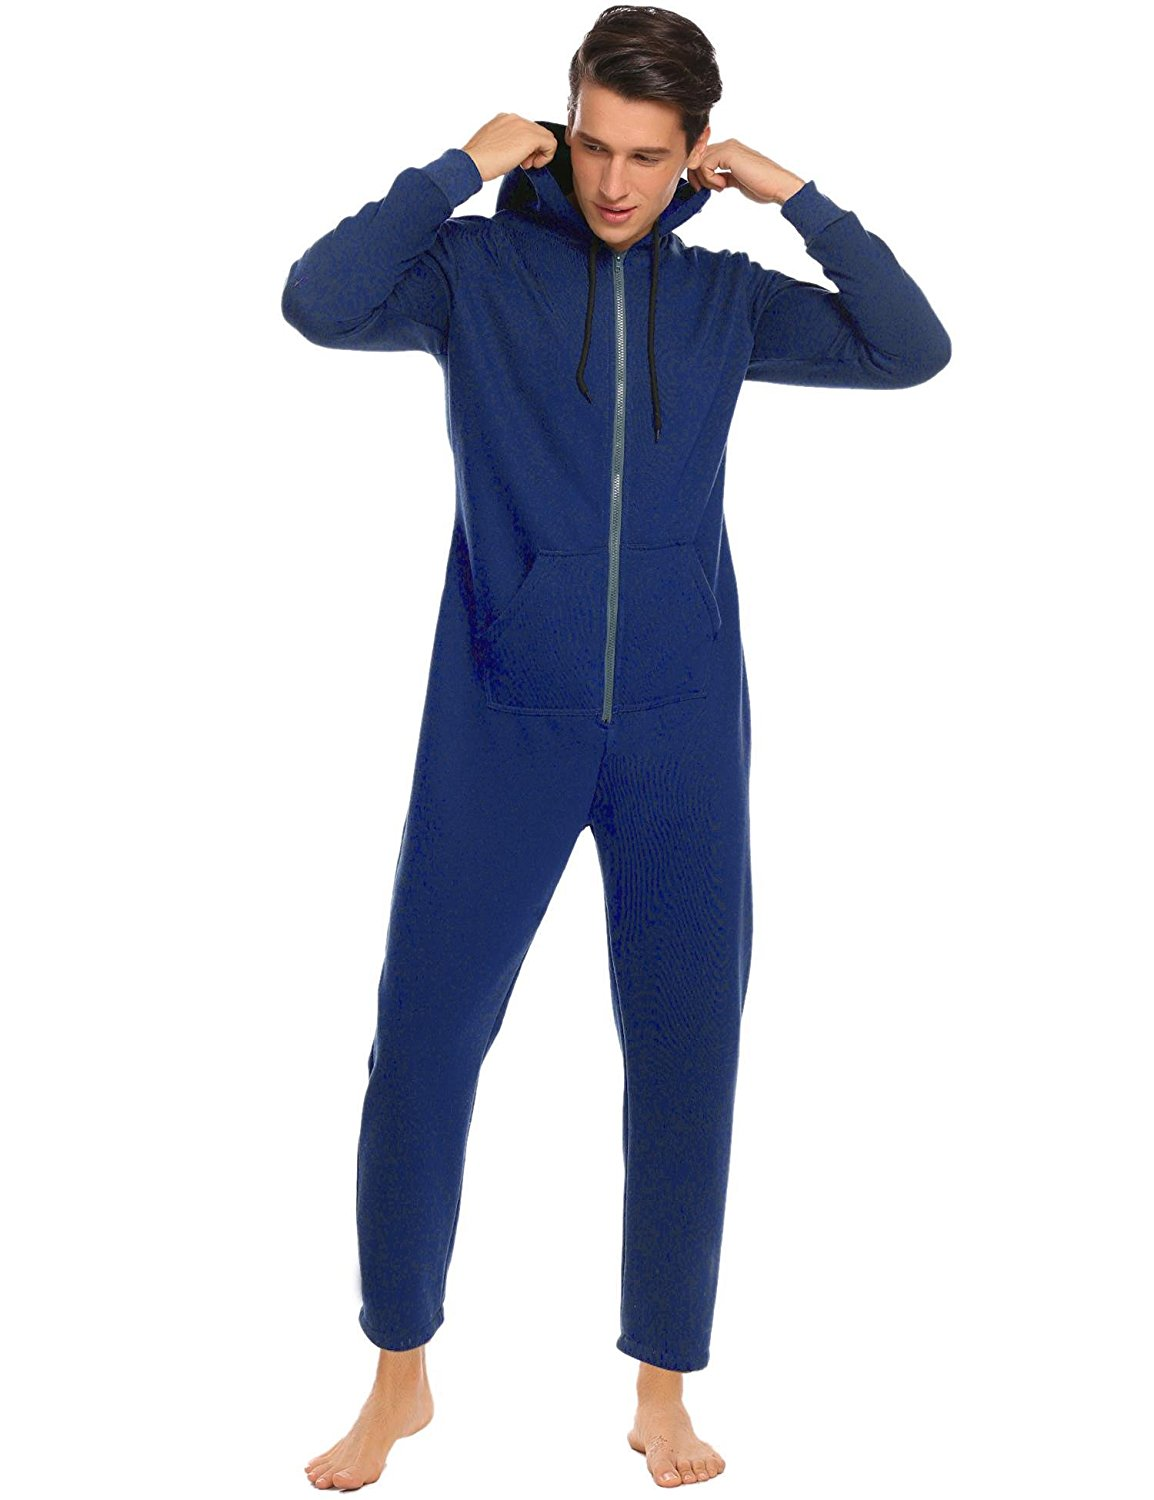 7e8e6e8bff Get Quotations · Ekouaer Mens Onesie Pajamas Adult Hooded Non Footed  Jumpsuit PJS Sleepwear